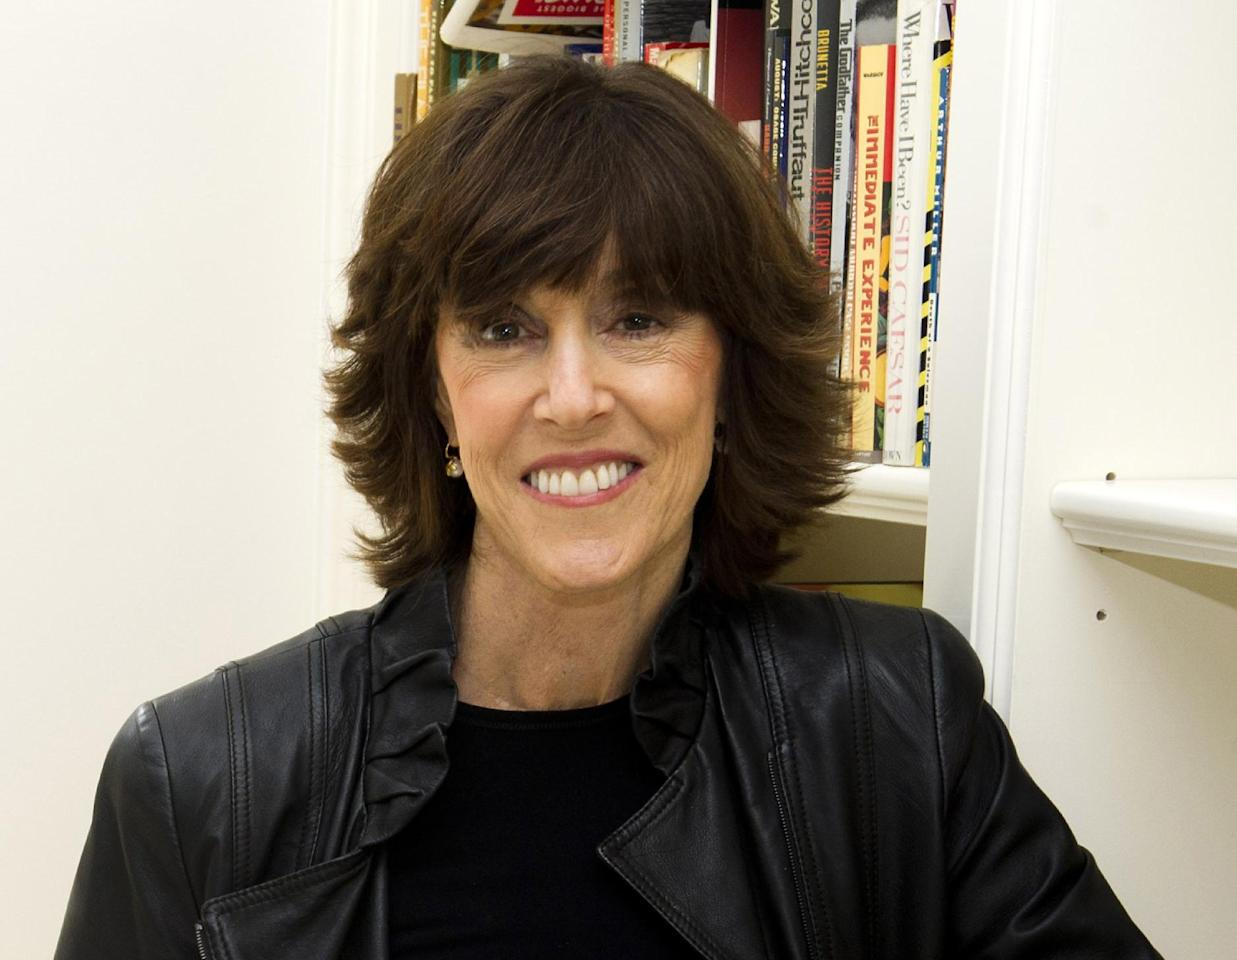 FILE - This Nov. 3, 2010 file photo shows author, screenwriter and director Nora Ephron at her home in New York. Oscar-nominated filmmaker and author Nora Ephron is very ill, according to a representative for her publisher. Nicholas Latimer of Alfred A. Knopf confirmed her condition on Tuesday, June 26, 2012, hours after celebrity columnist and friend Liz Smith published what appeared to be a memorial for the writer. Smith told The Associated Press that she had spoken to Ephron's son Tuesday morning and was told that Ephron was dying. She said when she heard that funeral plans had already been arranged, she published the column on the website Women on the Web. Latimer did not provide any additional information on Ephron's condition. (AP Photo/Charles Sykes, file)